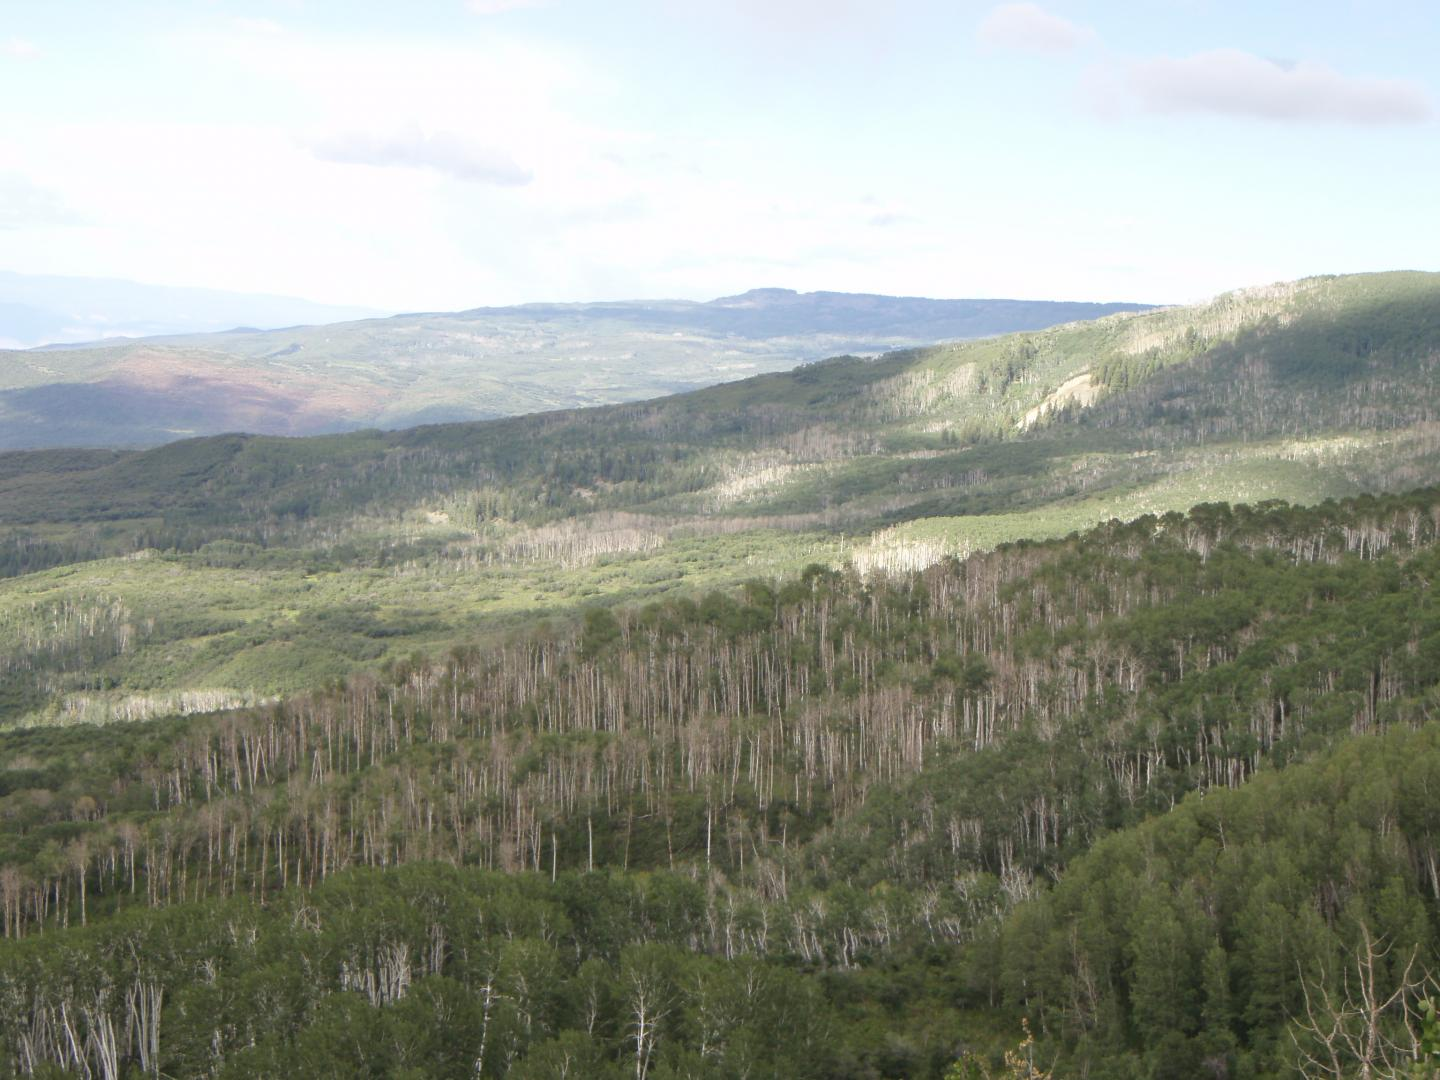 CATCH THE BUZZ – Which Trees Face Death in Drought? Fewer Trees, Certainly Less Honey Bee Food. Study Identifies Tree Traits That May Contribute to Drought Vulnerability